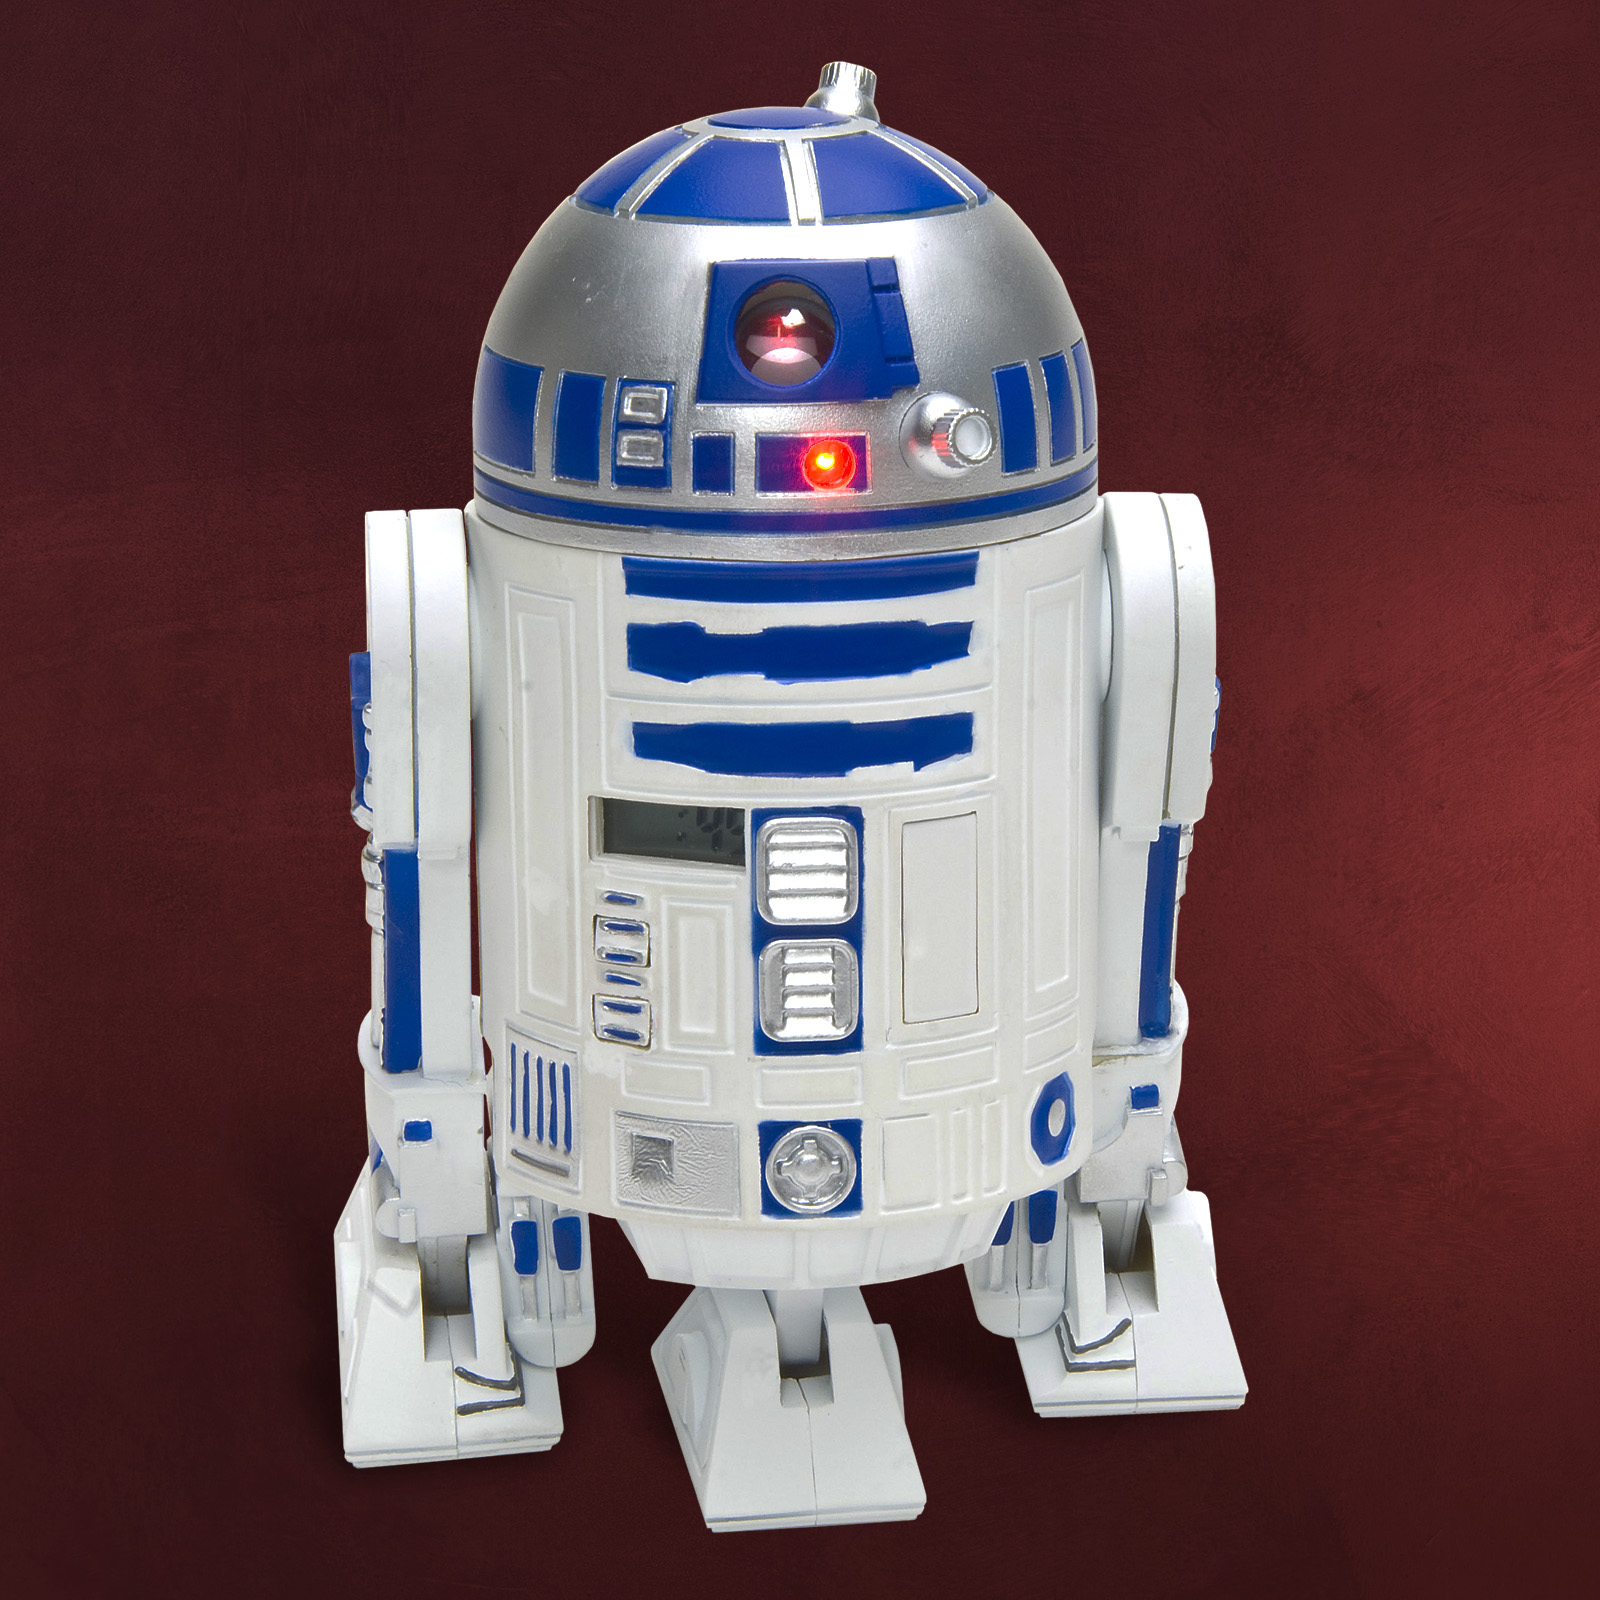 star wars clone wars r2 d2 wecker mit sound projektion. Black Bedroom Furniture Sets. Home Design Ideas